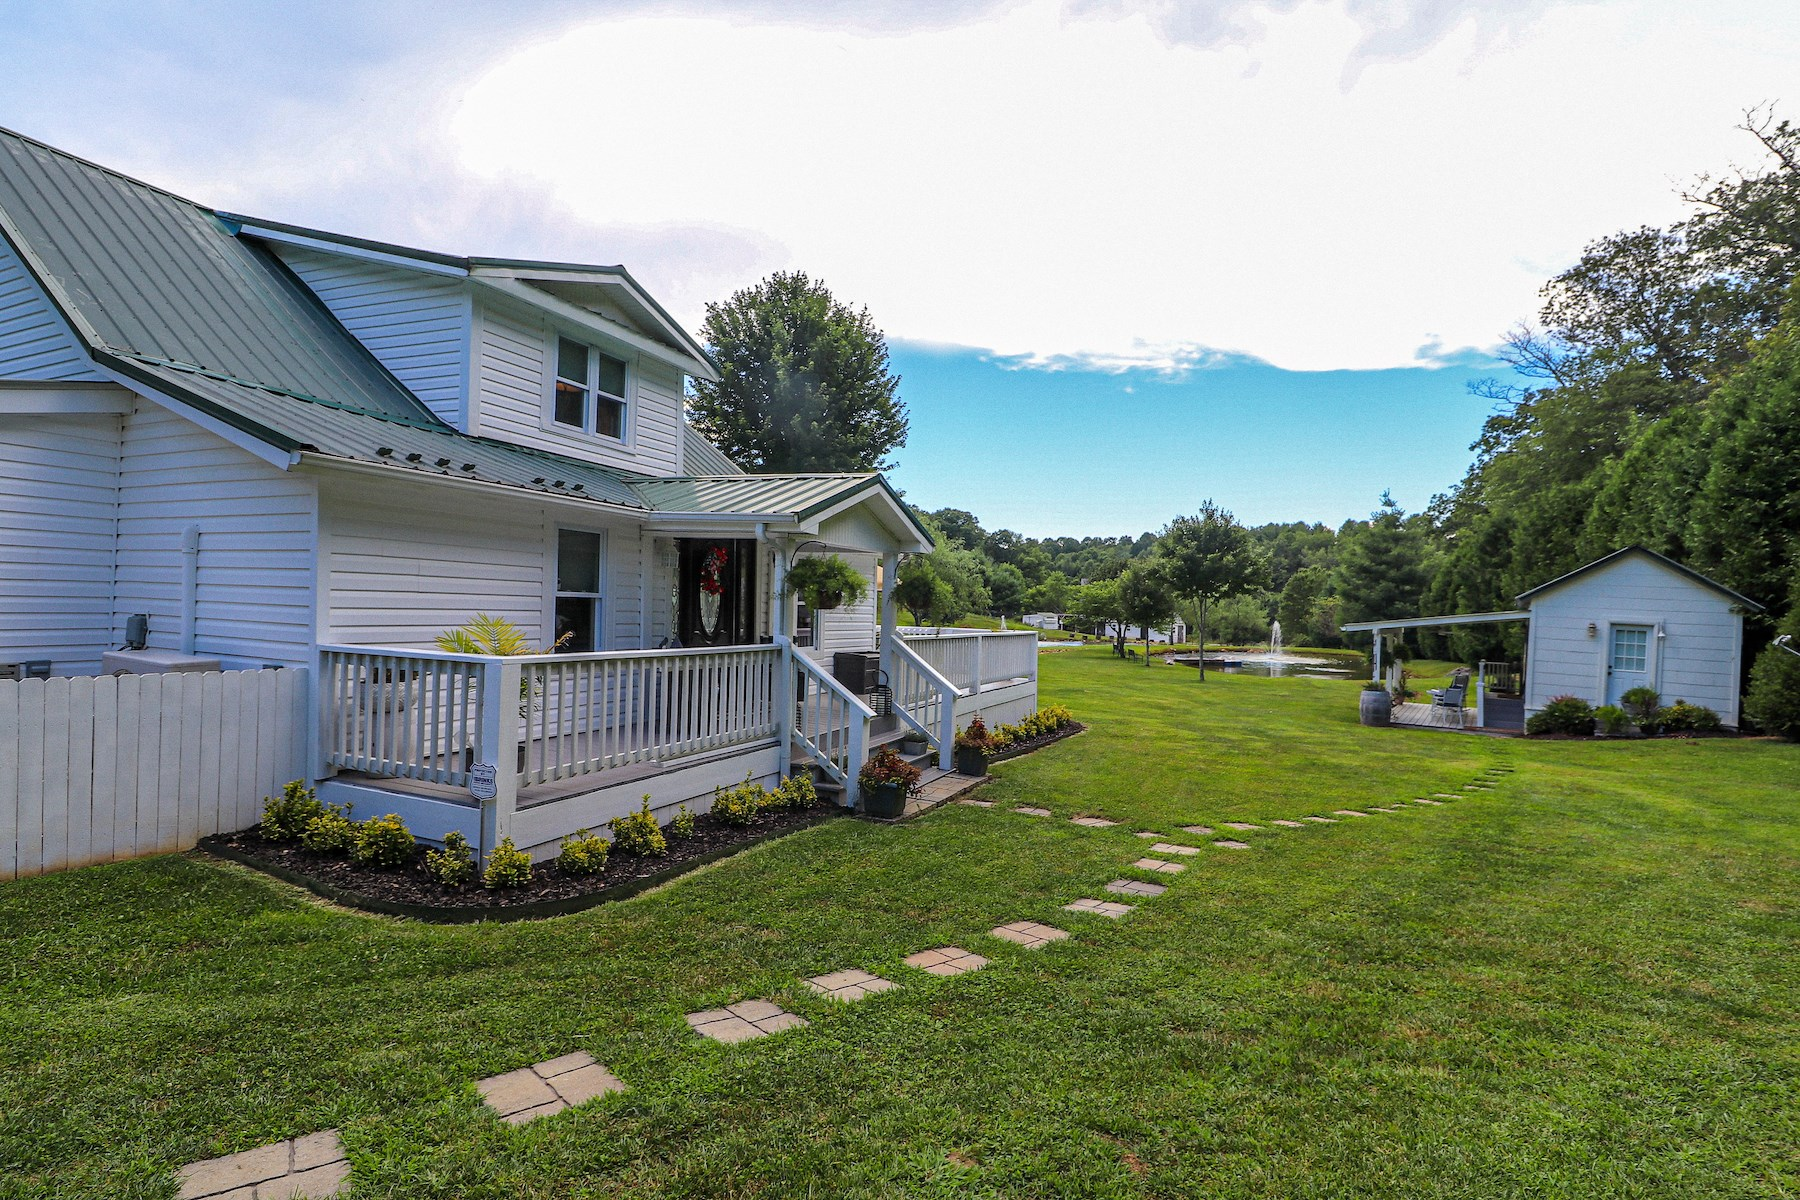 Farm for Sale in Meadows of Dan VA!